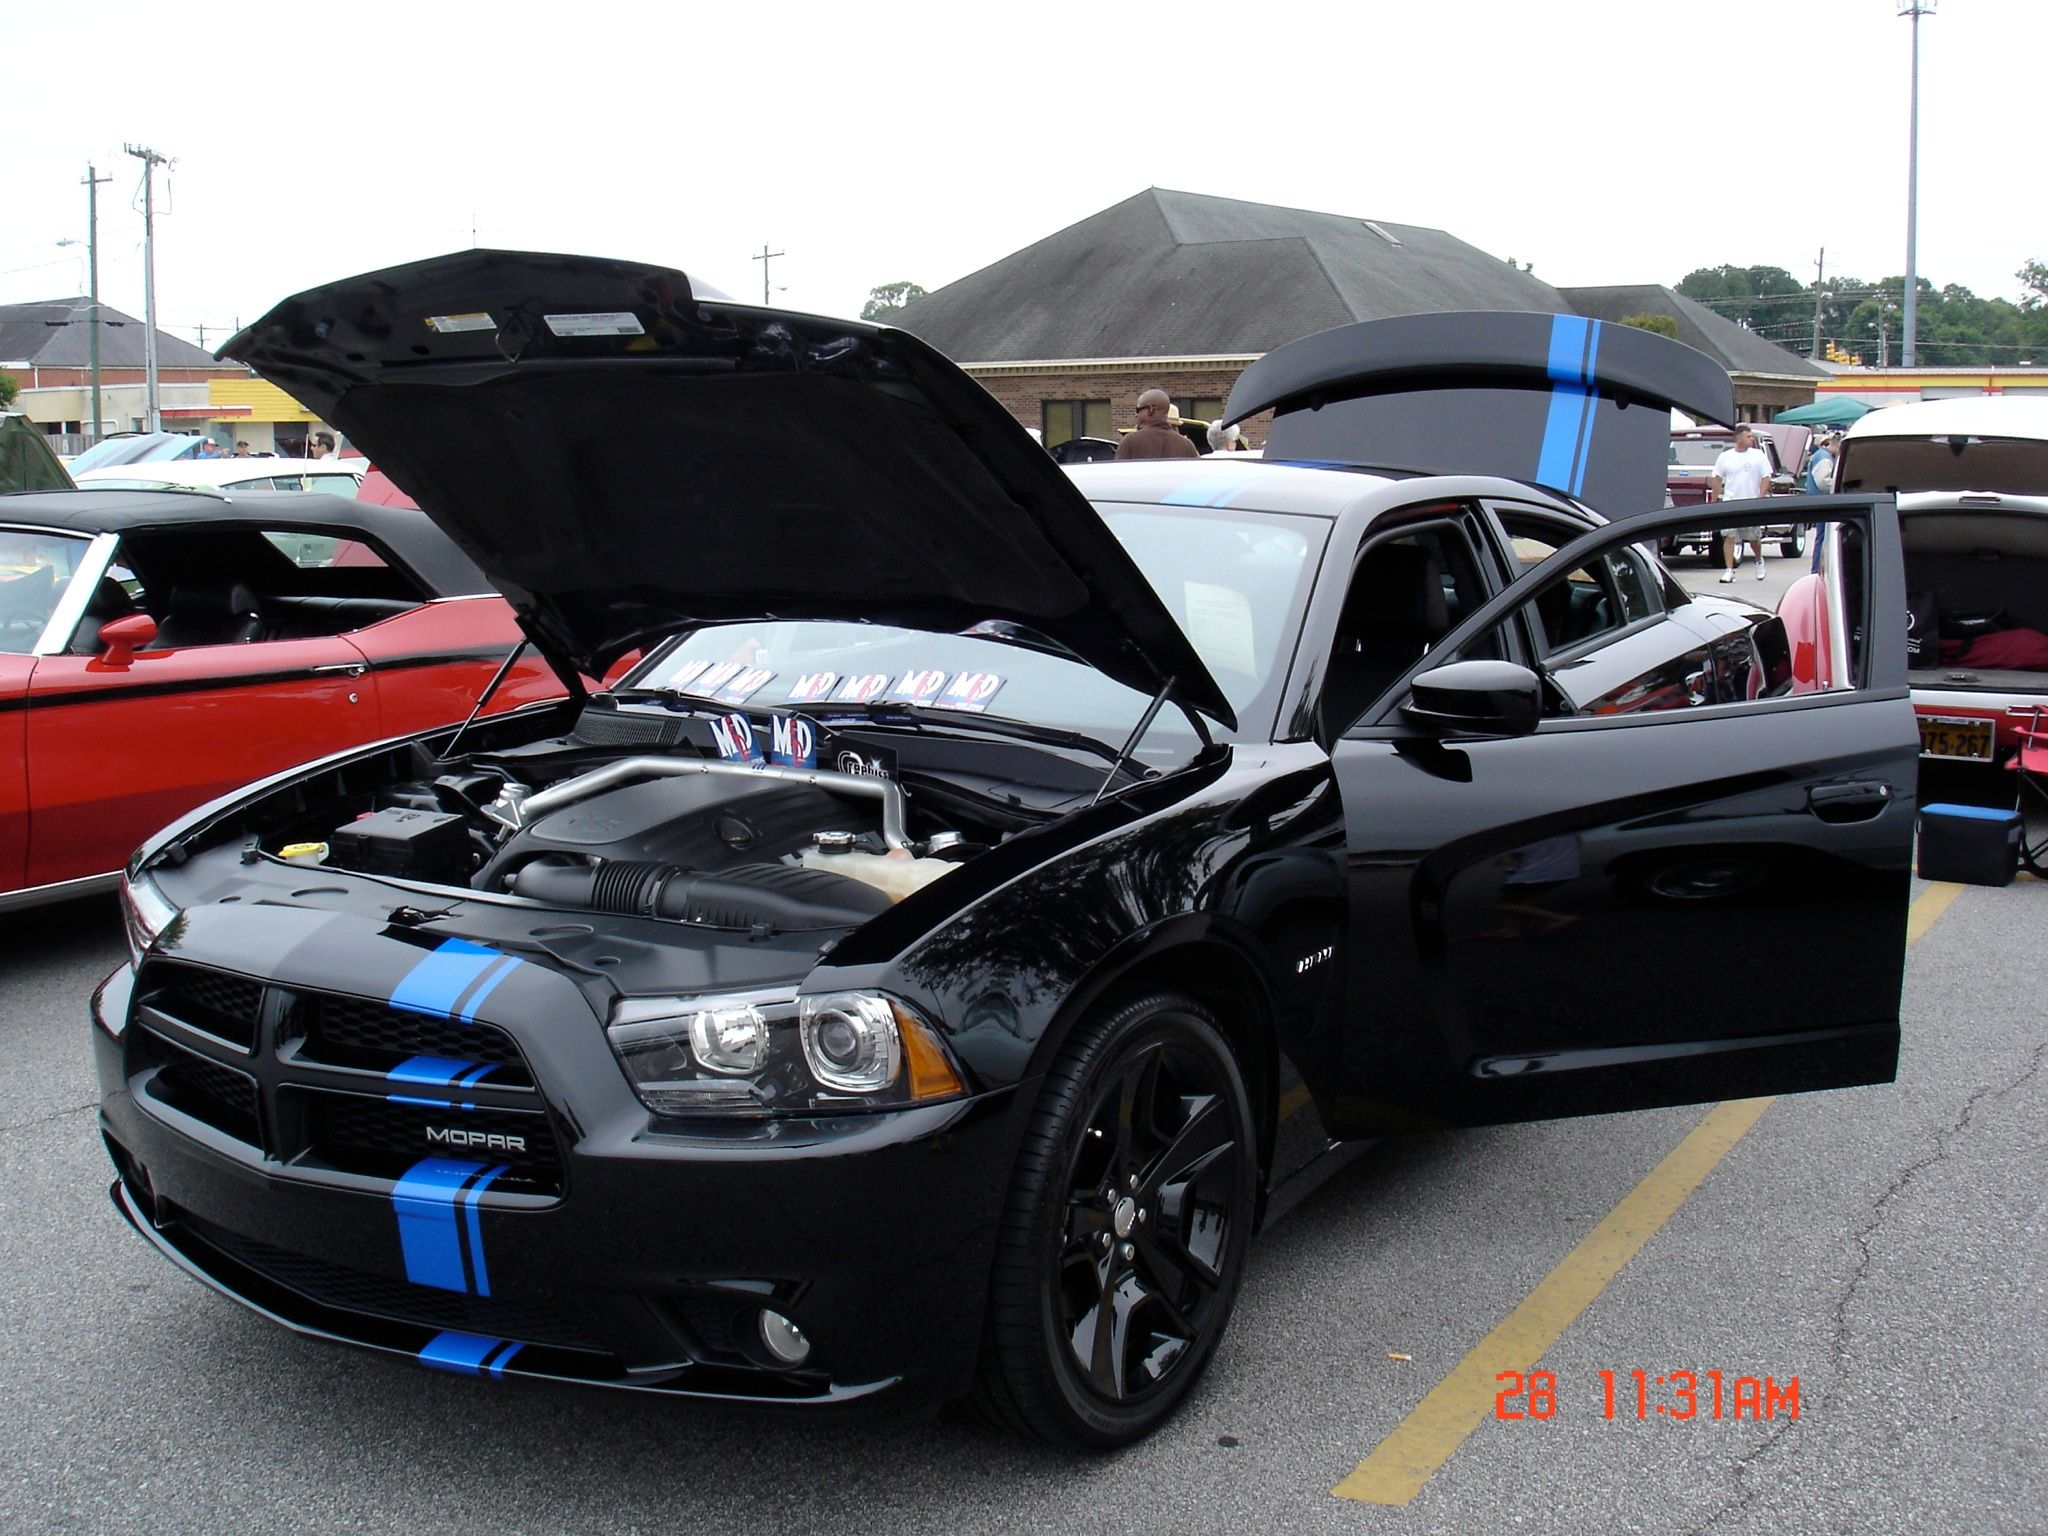 2011 dodge charger mopar edition car pinterest. Black Bedroom Furniture Sets. Home Design Ideas